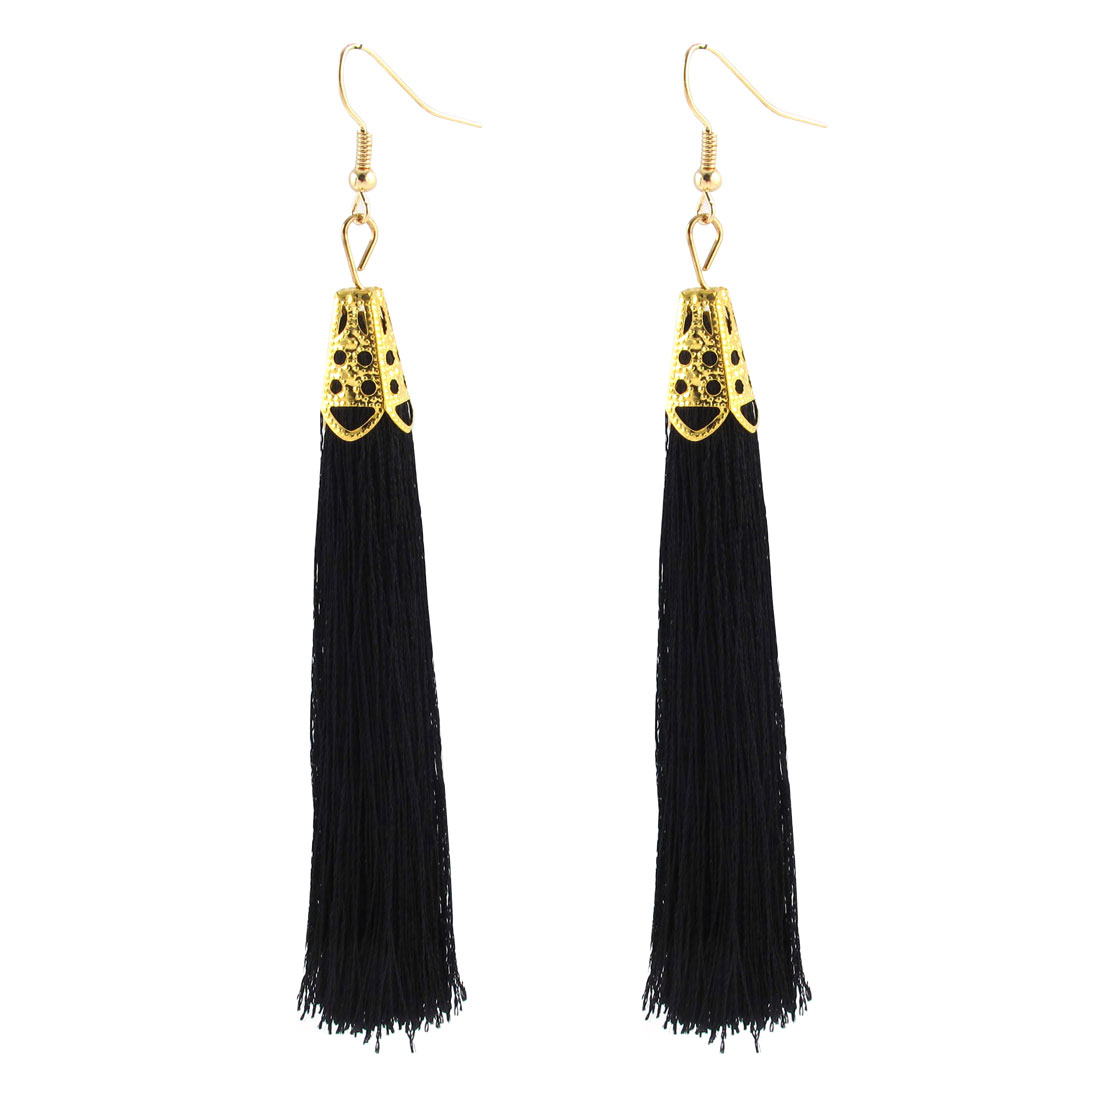 Fish Hook Design Charm Tassel Pendant Earrings Eardrop 2 Pcs Black for Lady